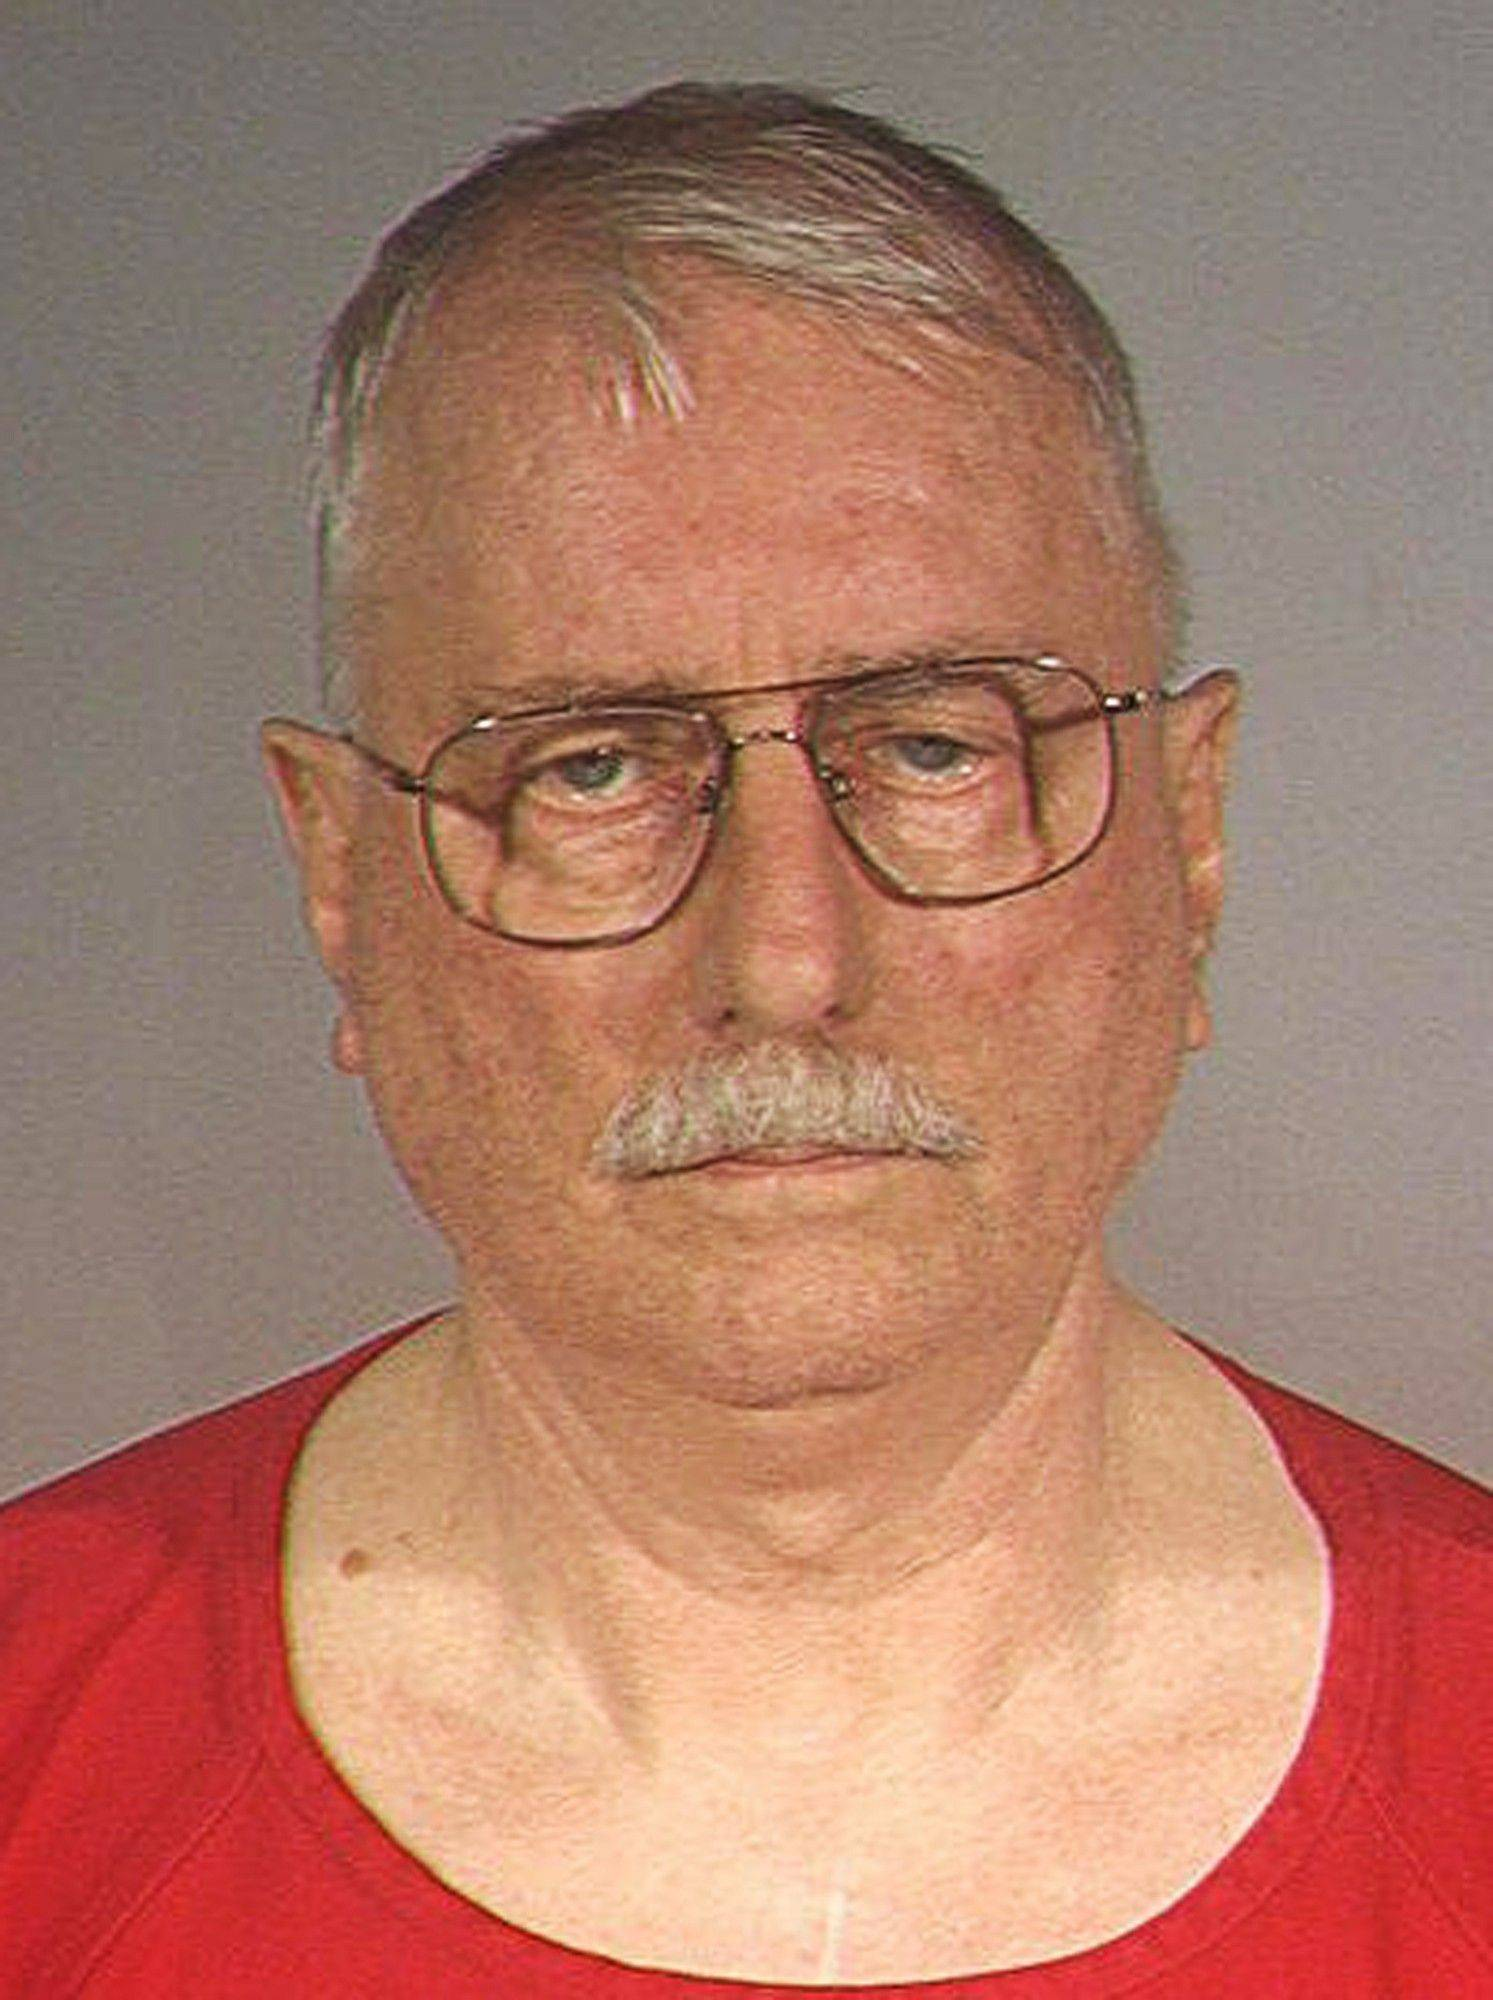 Jack McCullough was arrested last month in Seattle and brought to Illinois to face charges in the 1957 death of his former neighbor in Sycamore.